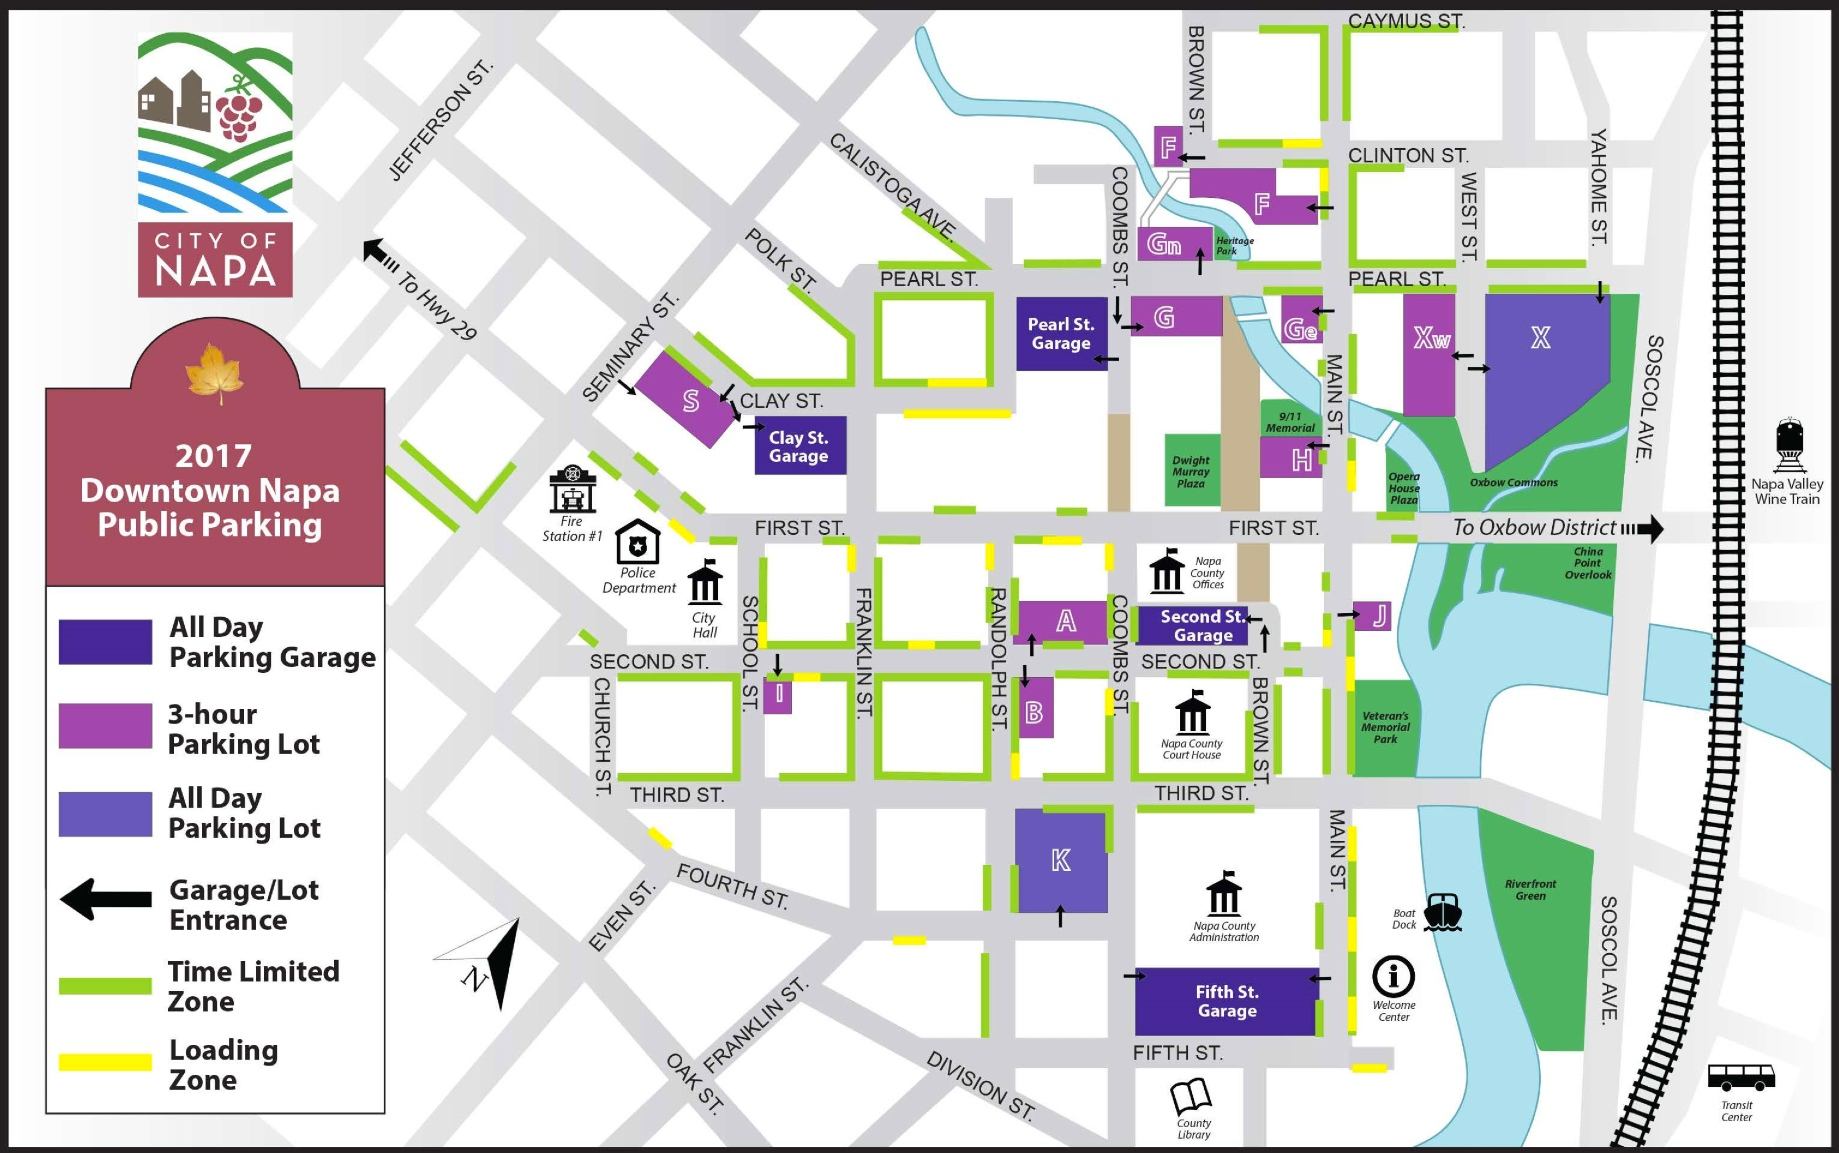 City of Napa parking map